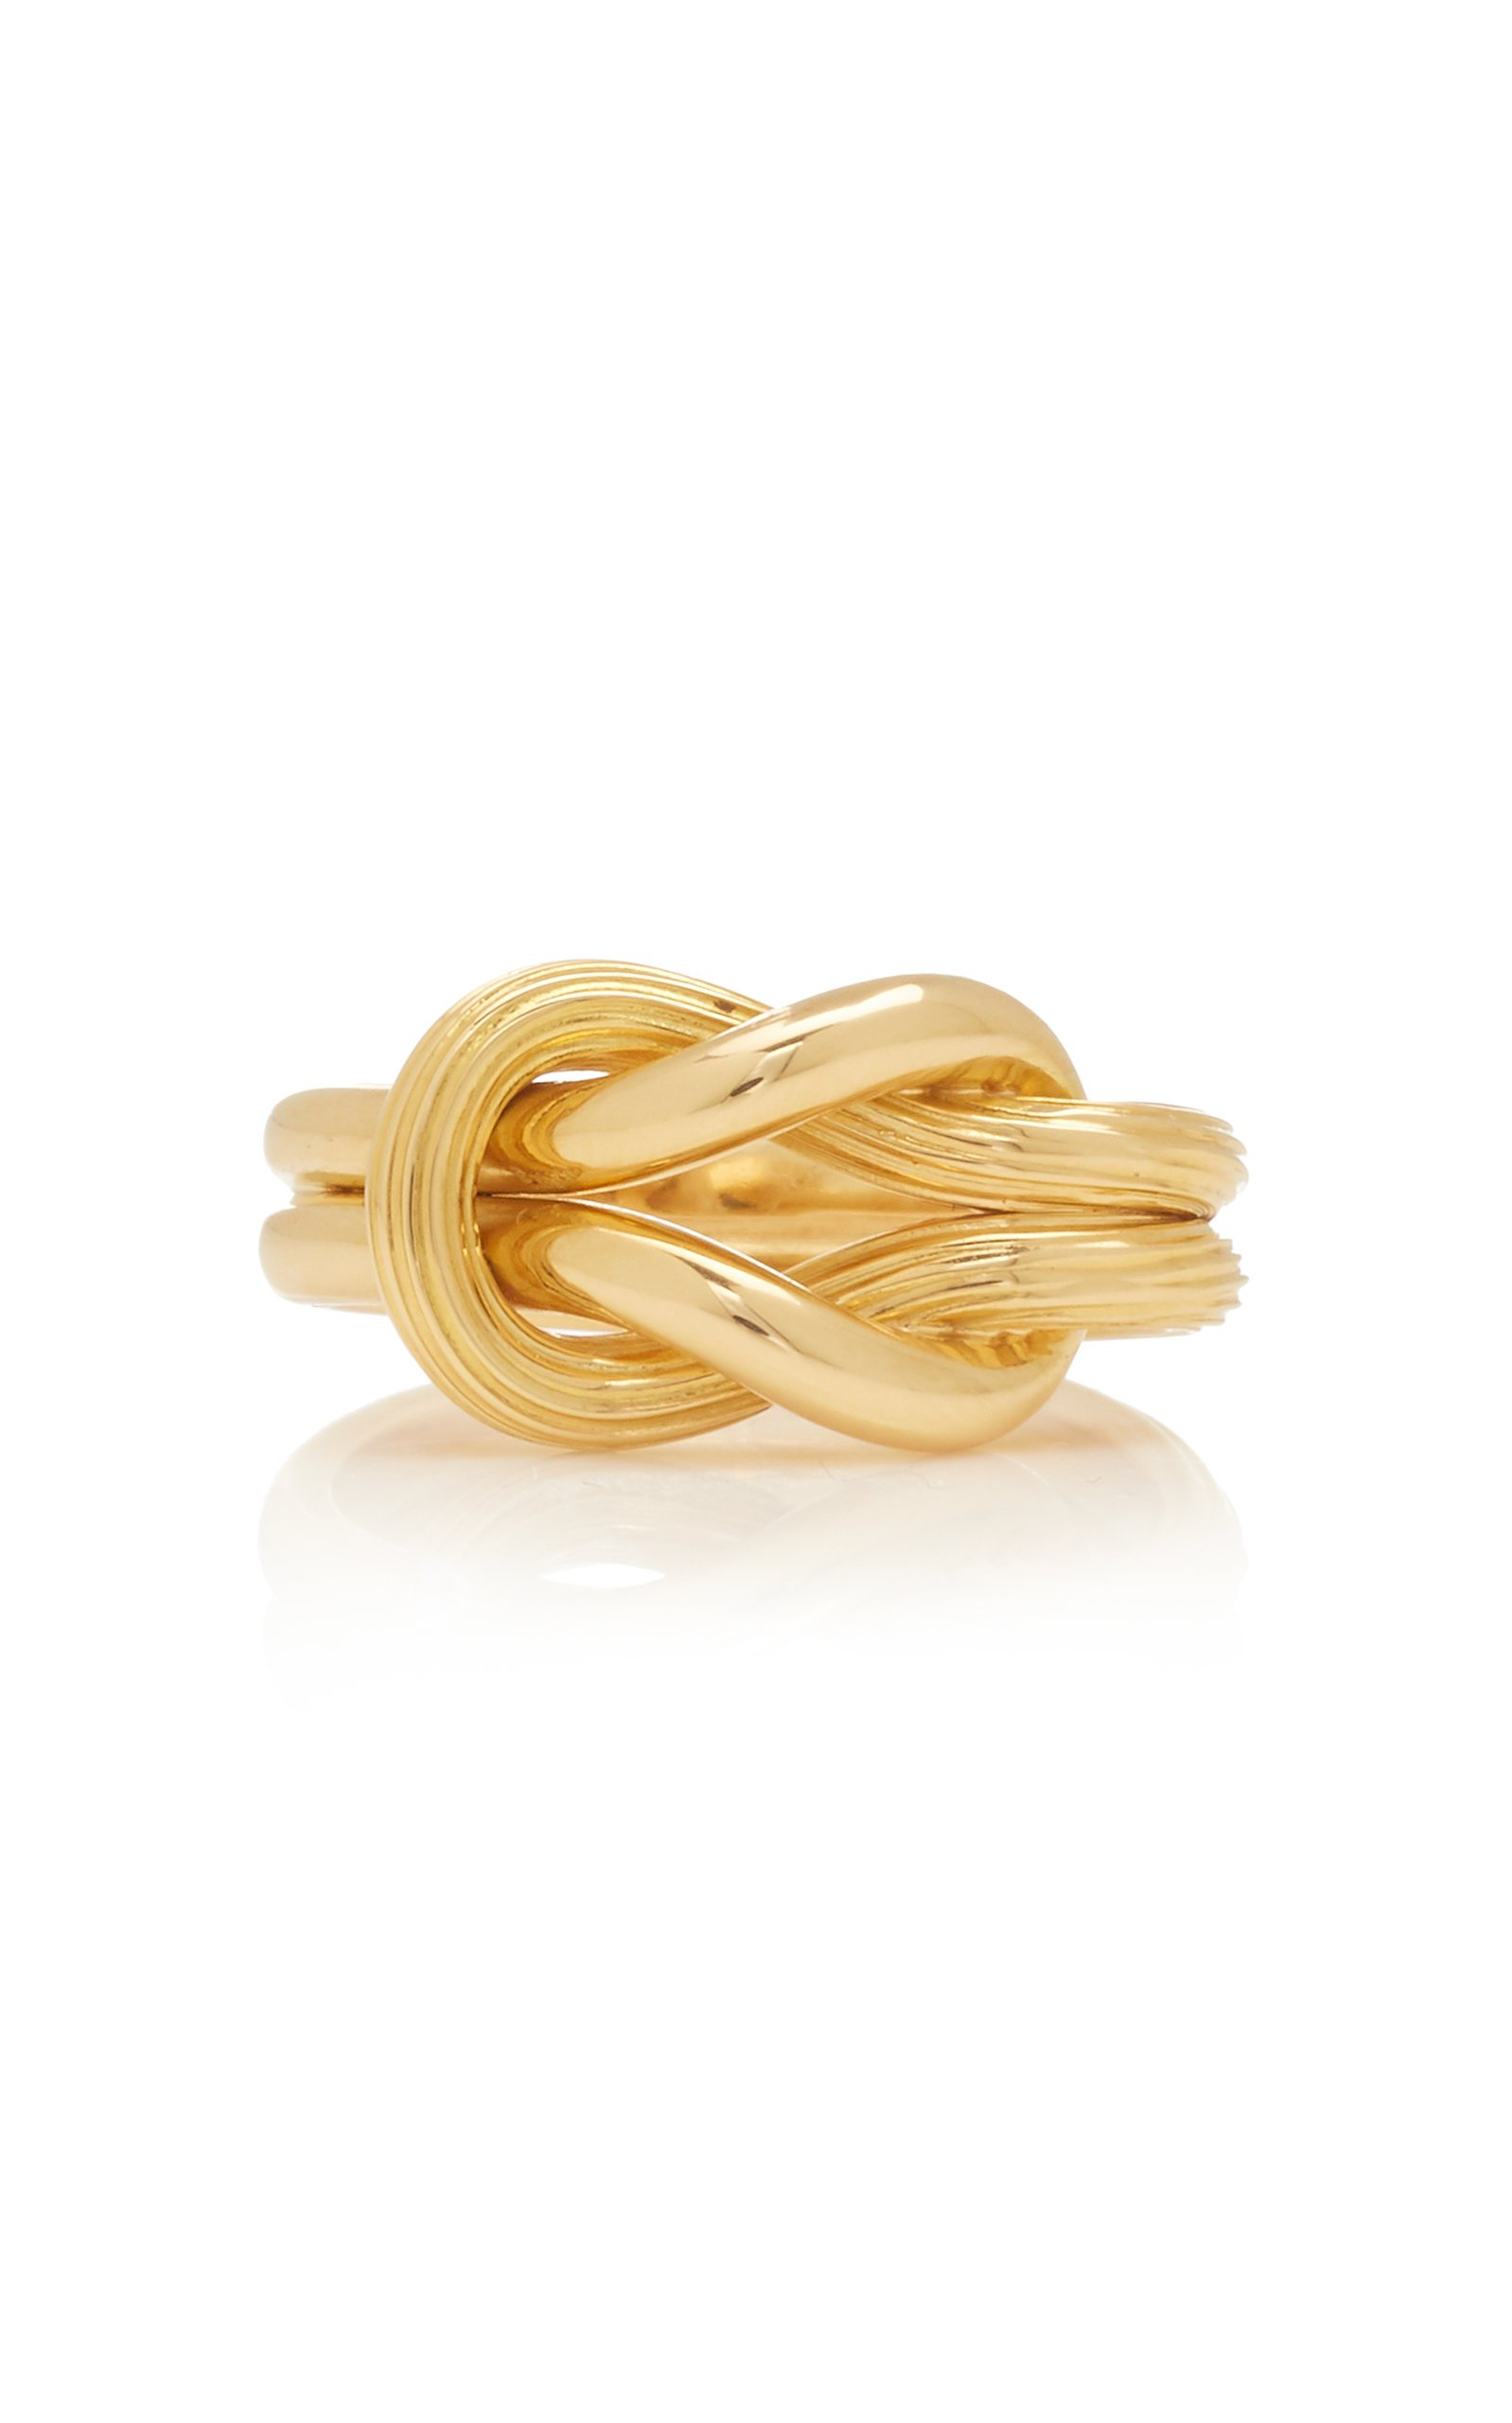 Ilias Lalaounis 18K Gold Hercules Knot Ring Size: 8